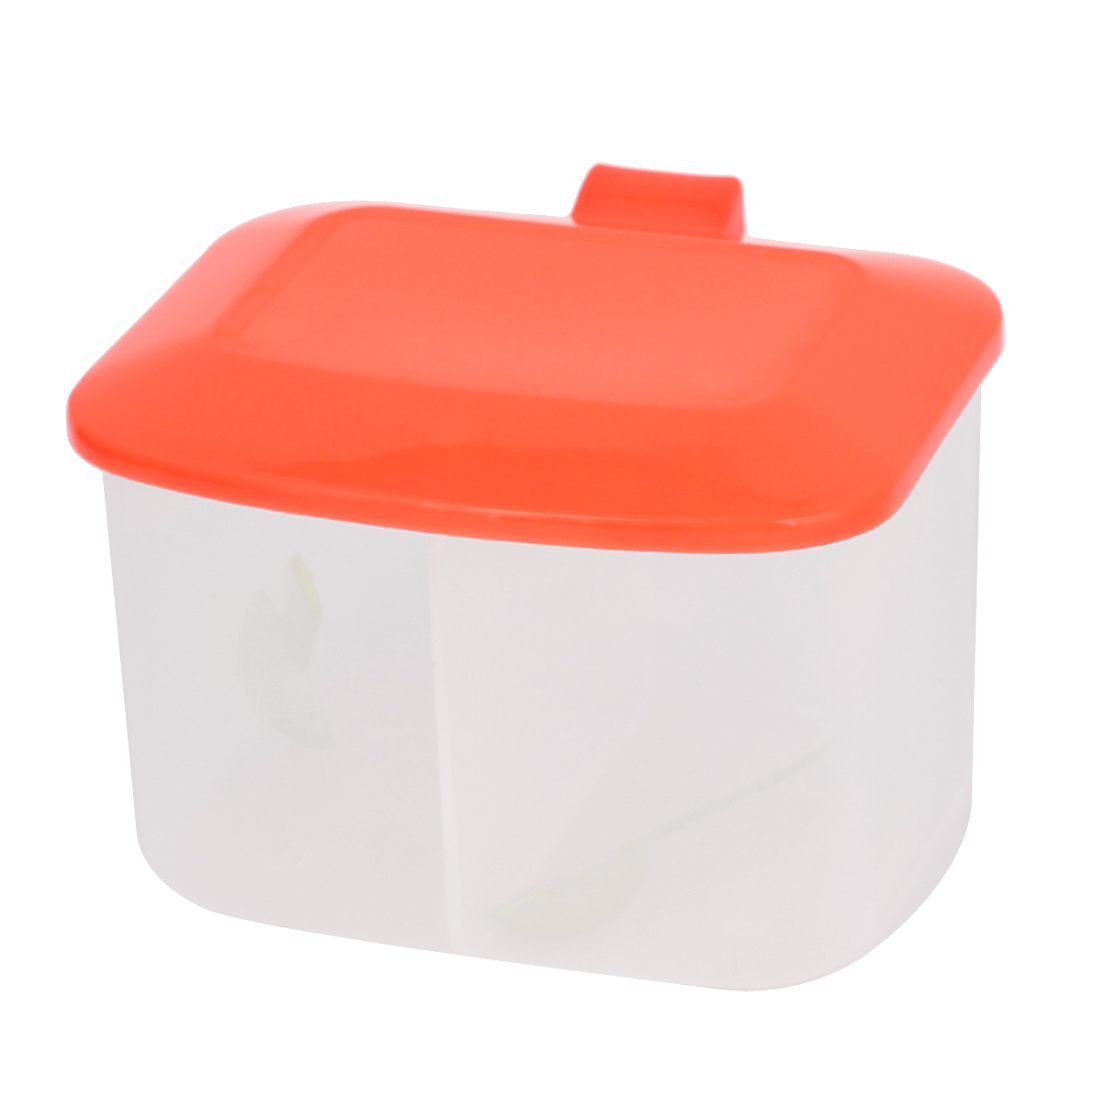 Orange Red Plastic 2 Seasoning Box Spices Condiment Container Case Holder w Spoons